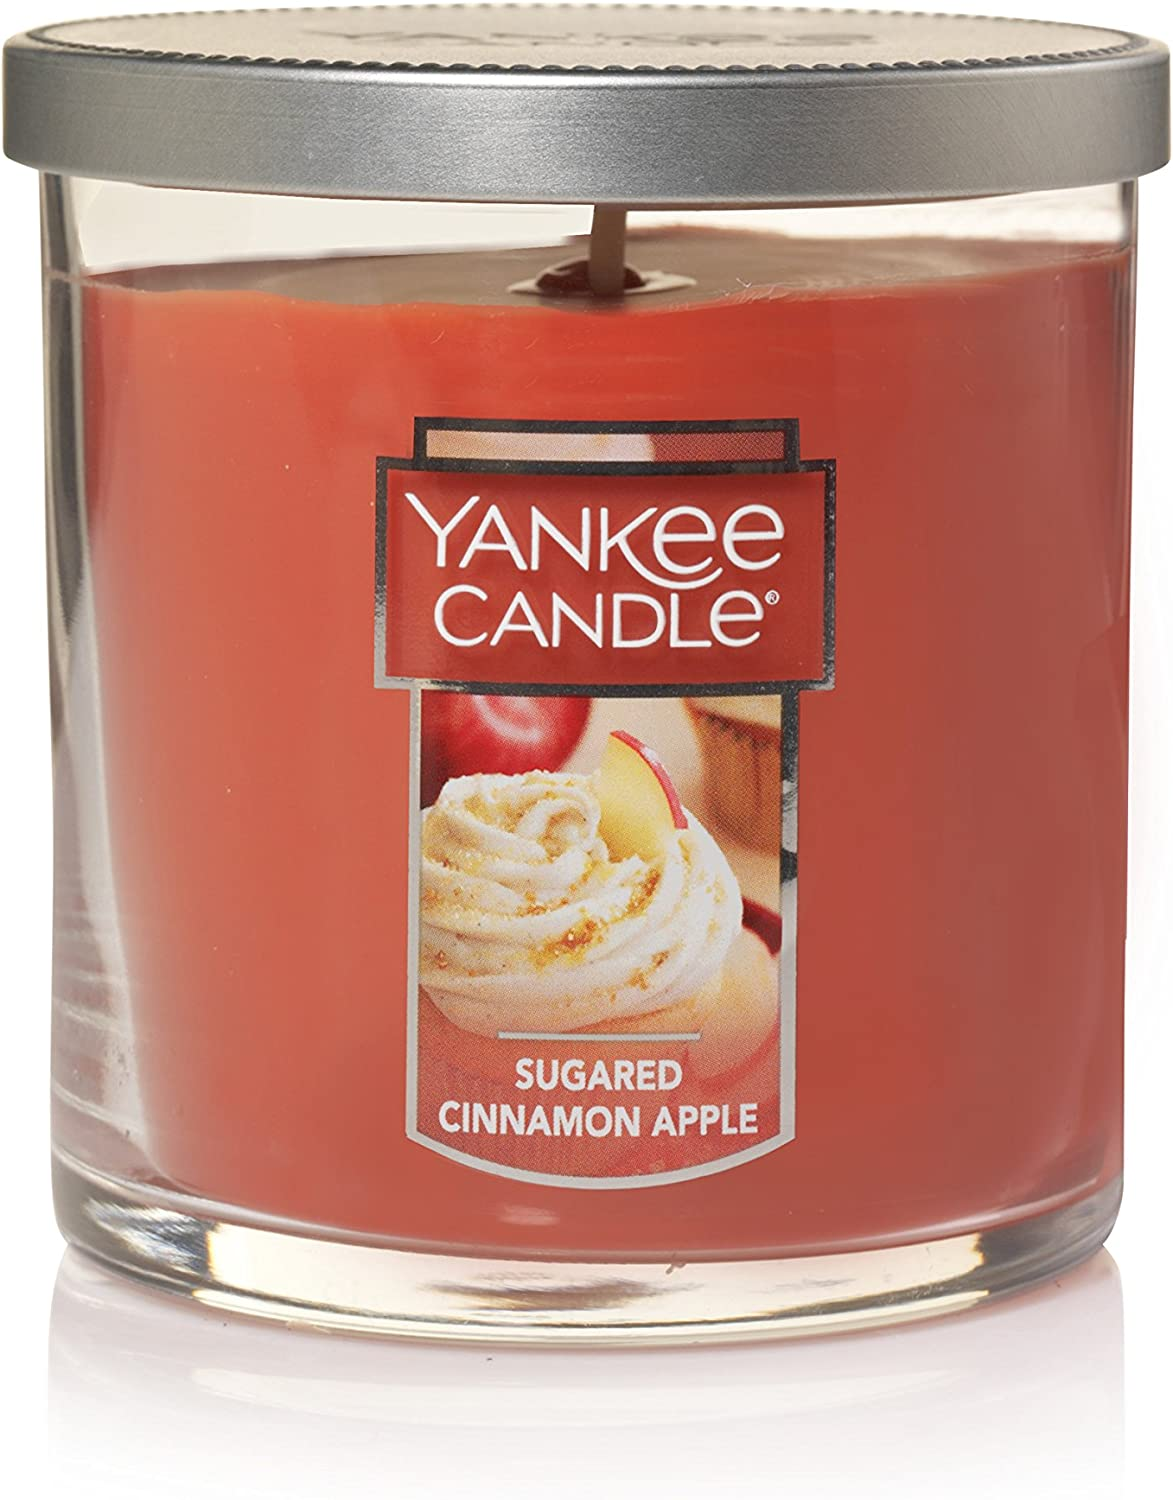 Yankee Candle Small Tumbler Scented Candle, Sugared Cinnamon Apple